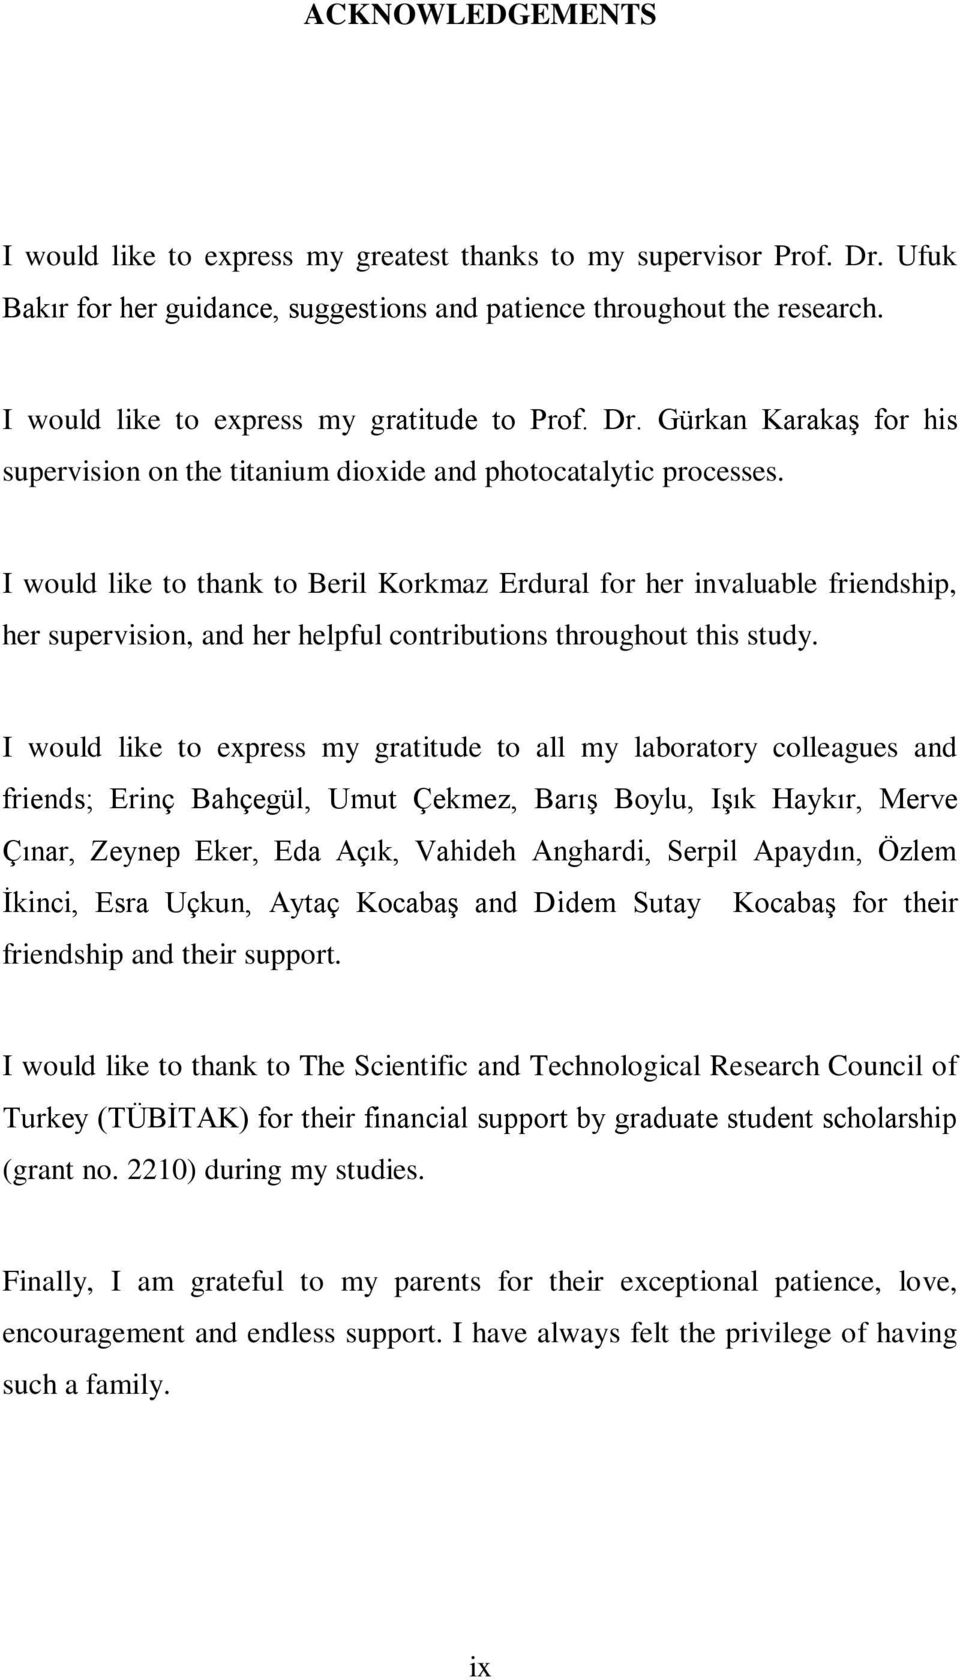 I would like to thank to Beril Korkmaz Erdural for her invaluable friendship, her supervision, and her helpful contributions throughout this study.